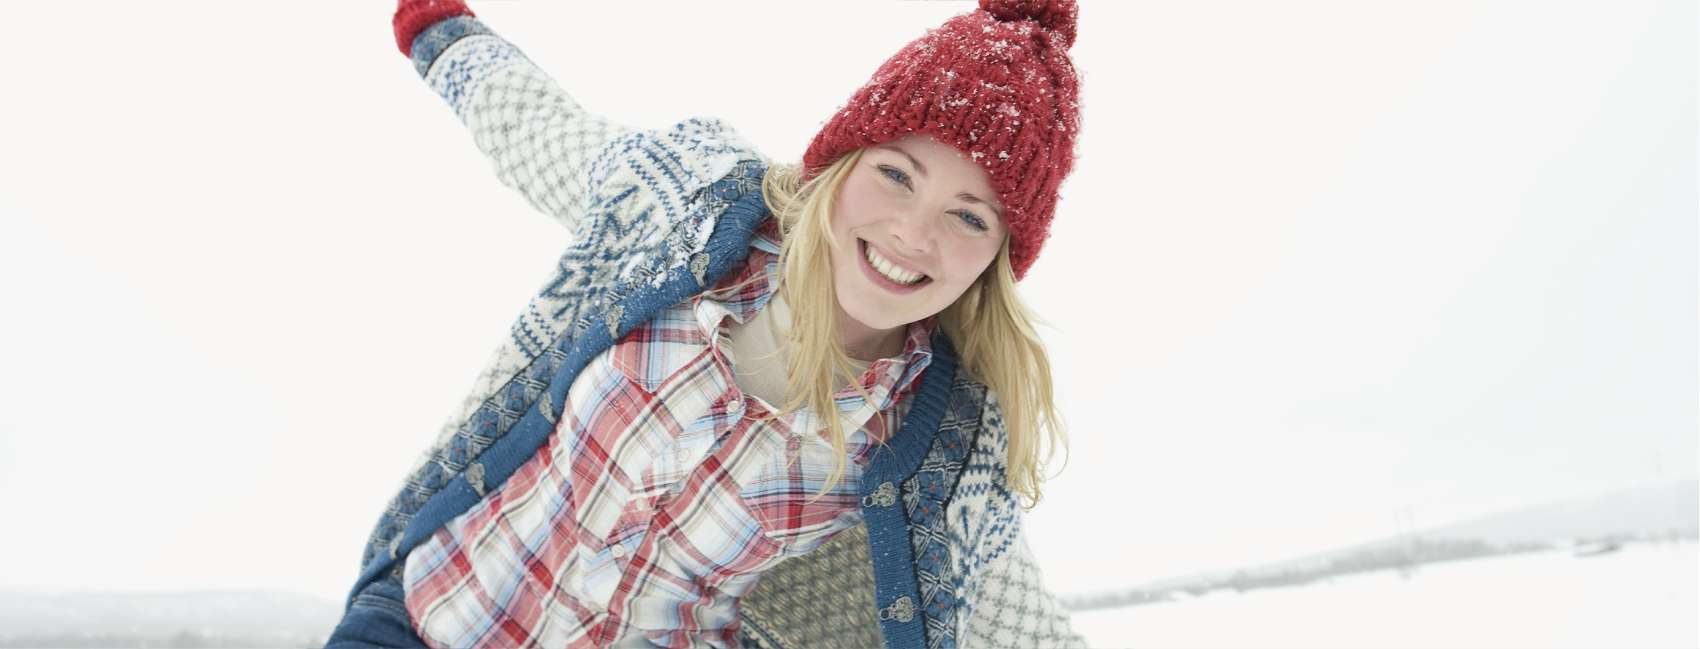 Smiling blonde girl wearing red beanie playing in the snow